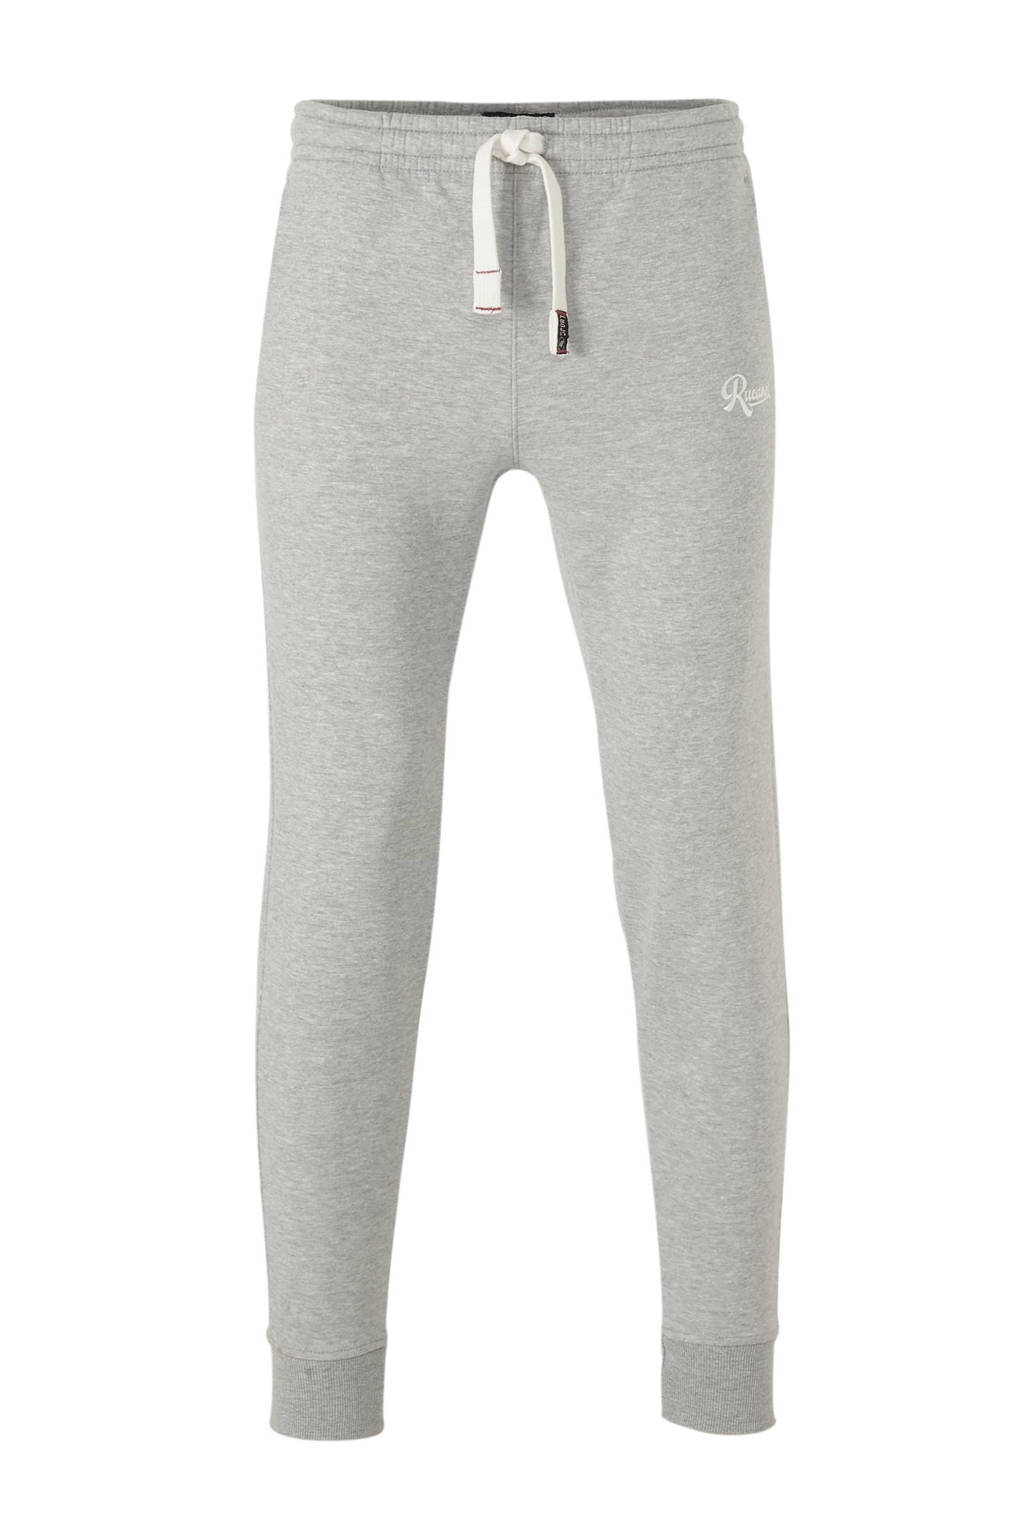 Rucanor fleece joggingbroek grijs melange, Grijs melange